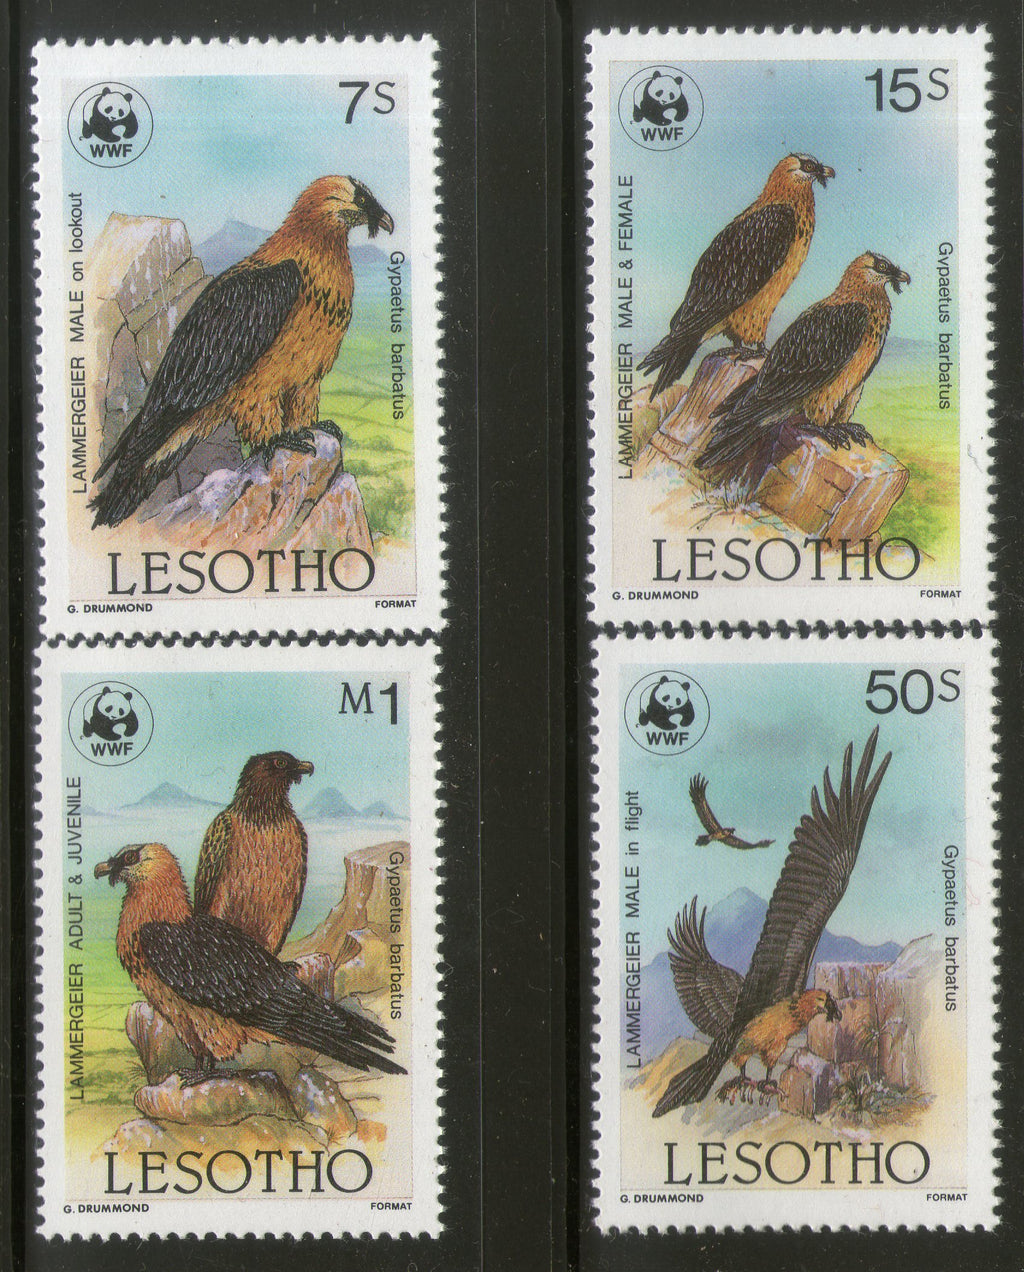 Lesotho 1986 WWF Bearded Vulture Bird of Prey Wildlife Fauna Sc 512-15 MNH # 034 - Phil India Stamps